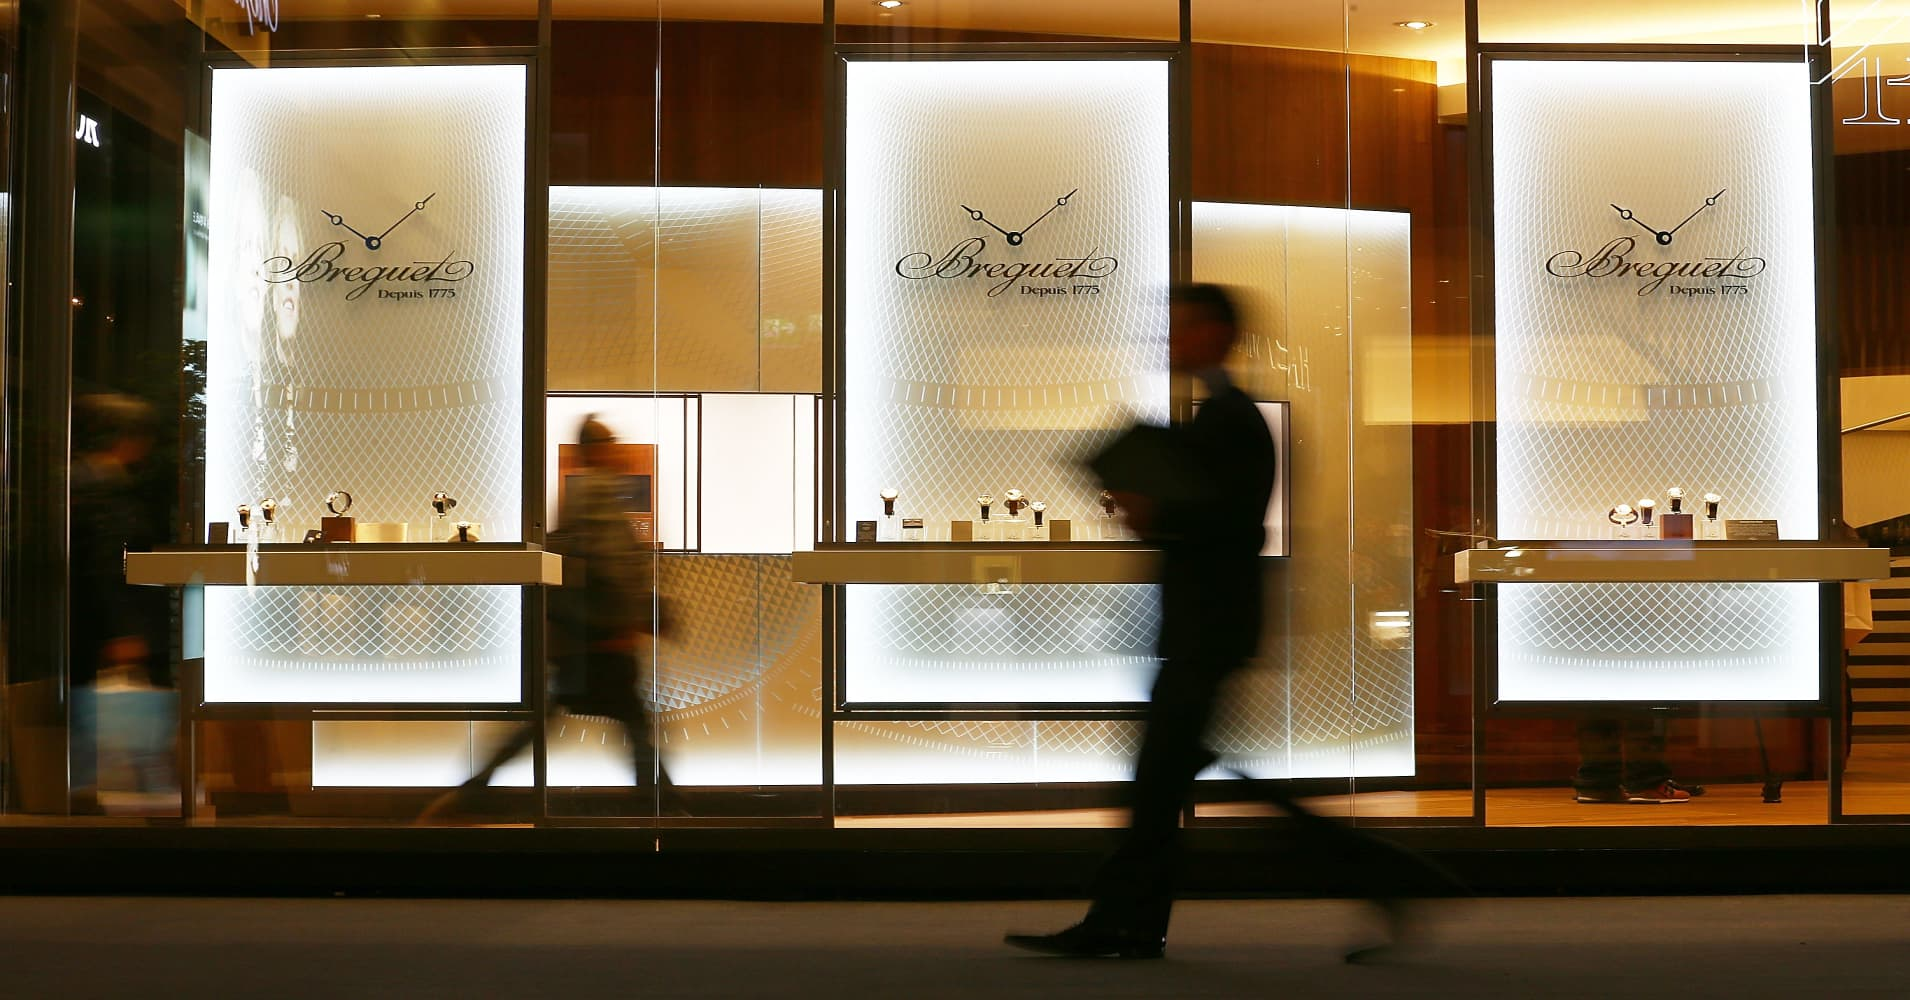 Luxury retailers are set to reap the benefits from tax reform